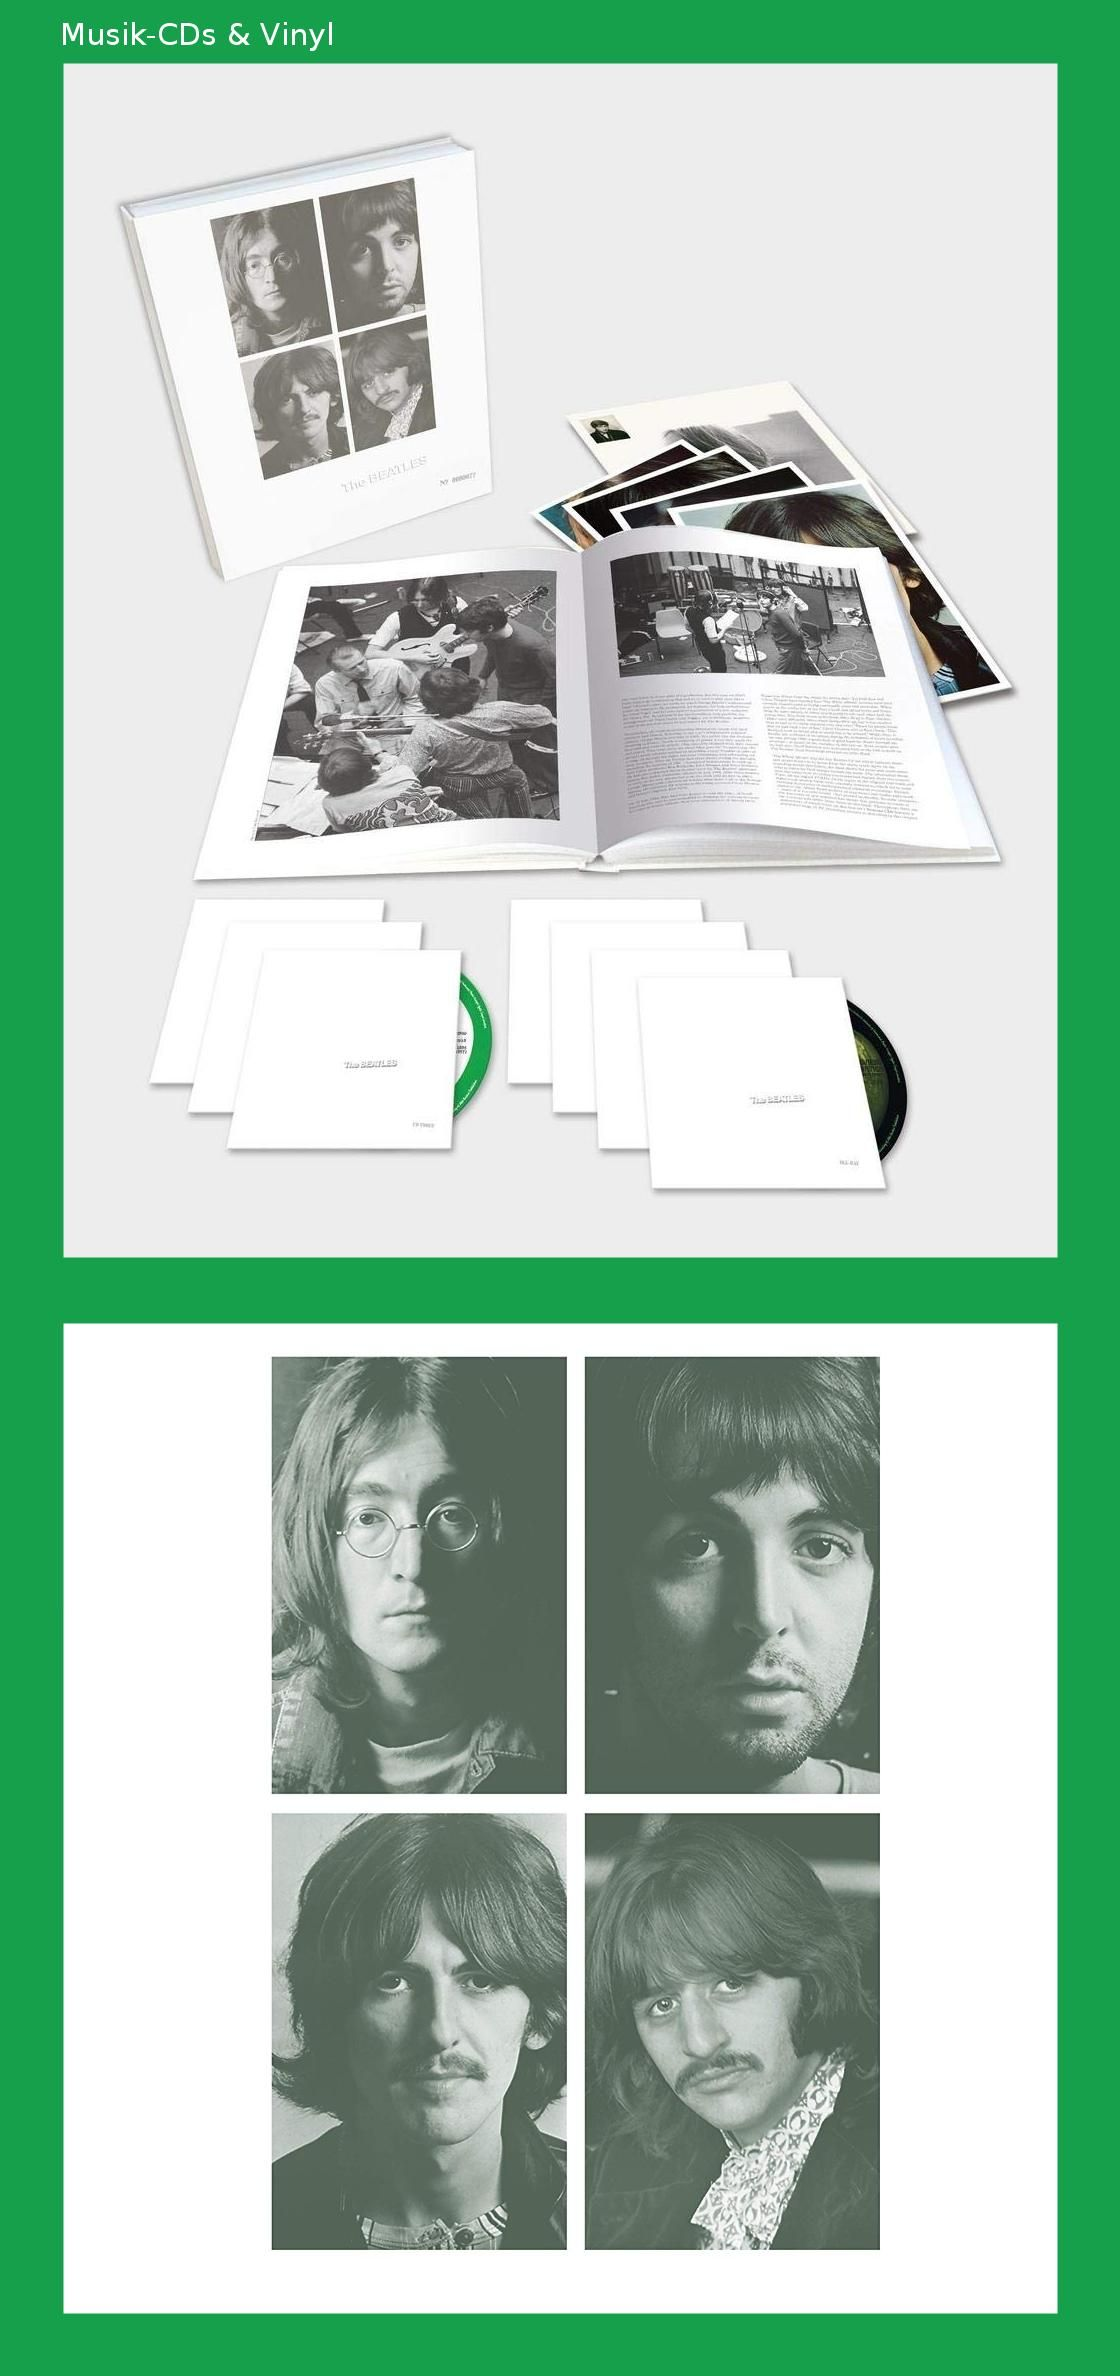 the beatles (white album - limited. 7 disc super deluxe edition)